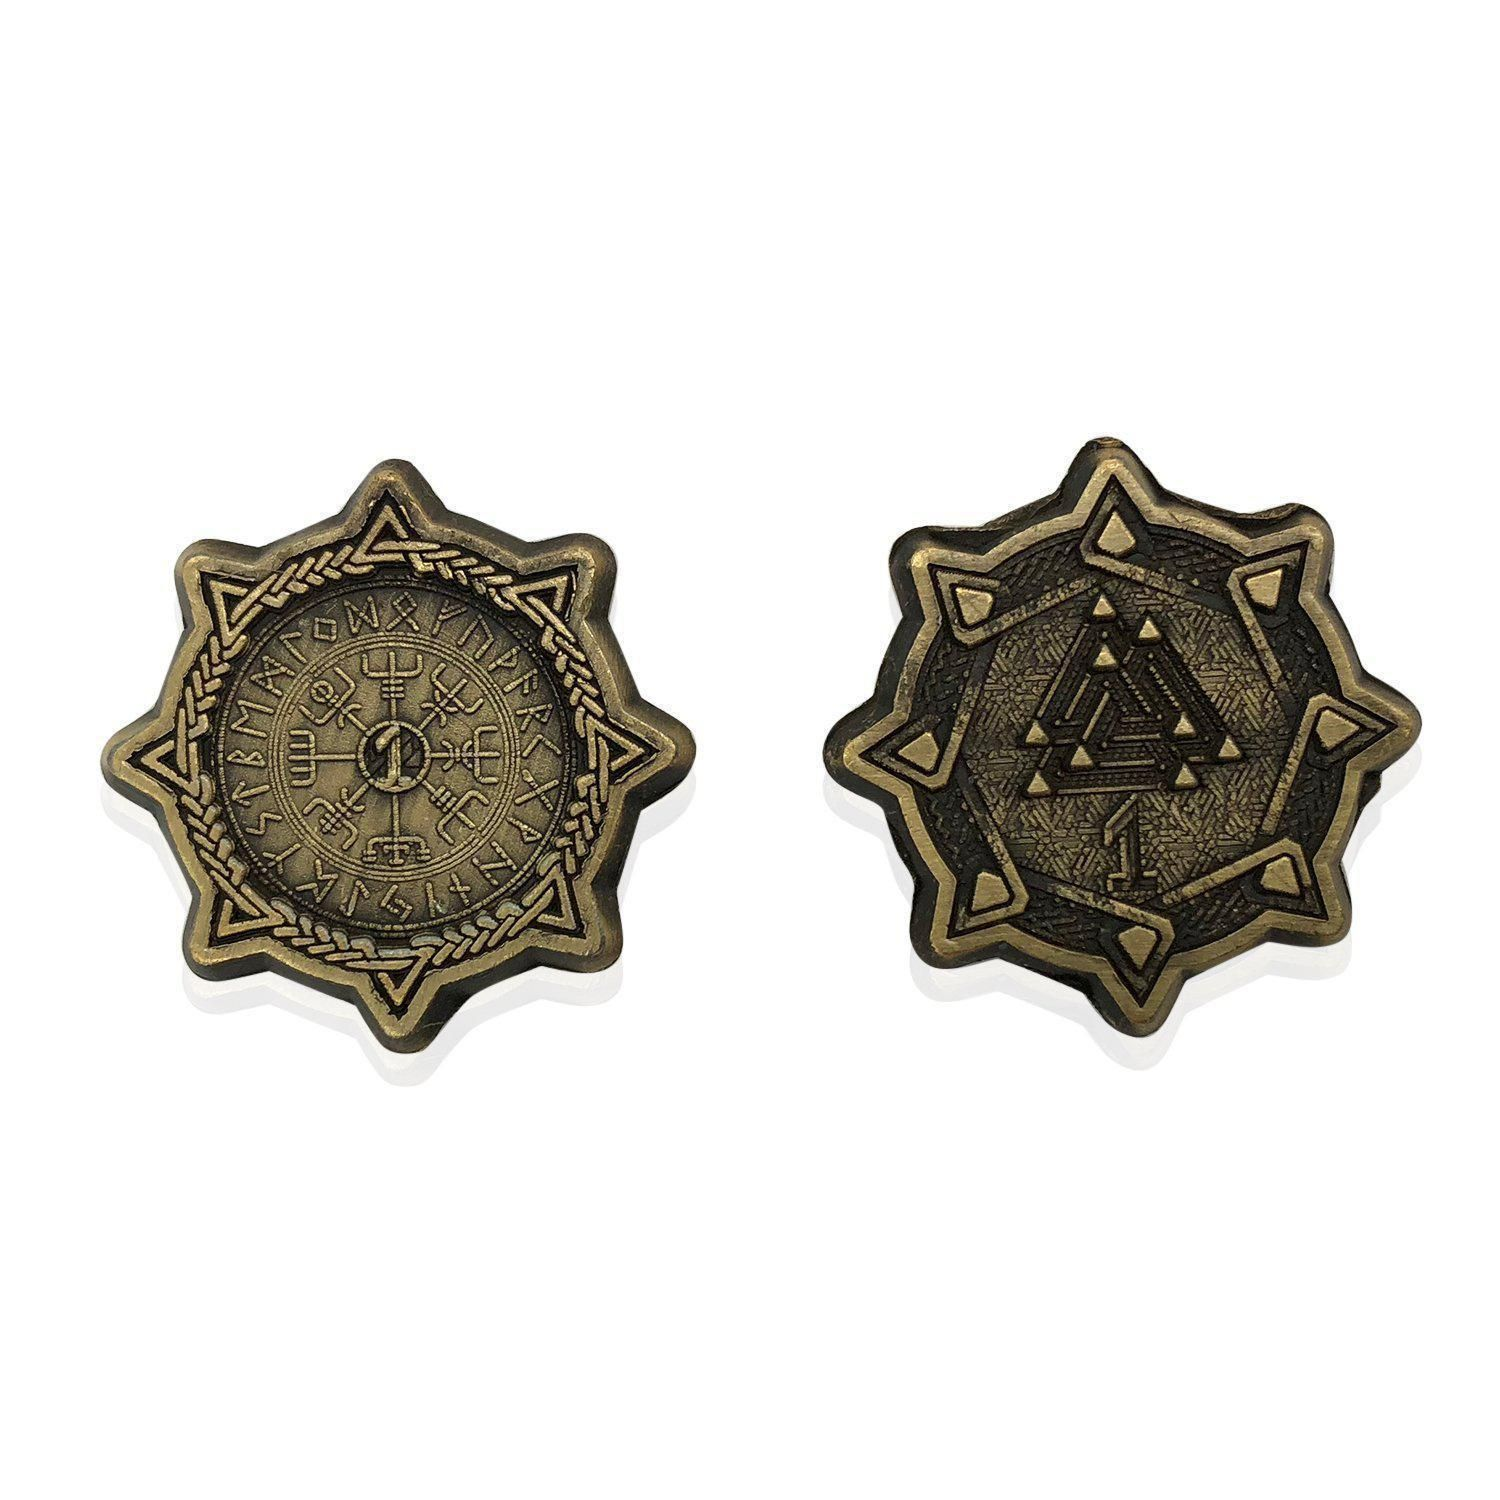 Pin On Adventure Coins Metal Roleplaying Tabletop Coins See our 2020 brand rating for norse foundry and analysis of 62 norse foundry reviews for 10 products in toys & games and role playing dice. pinterest